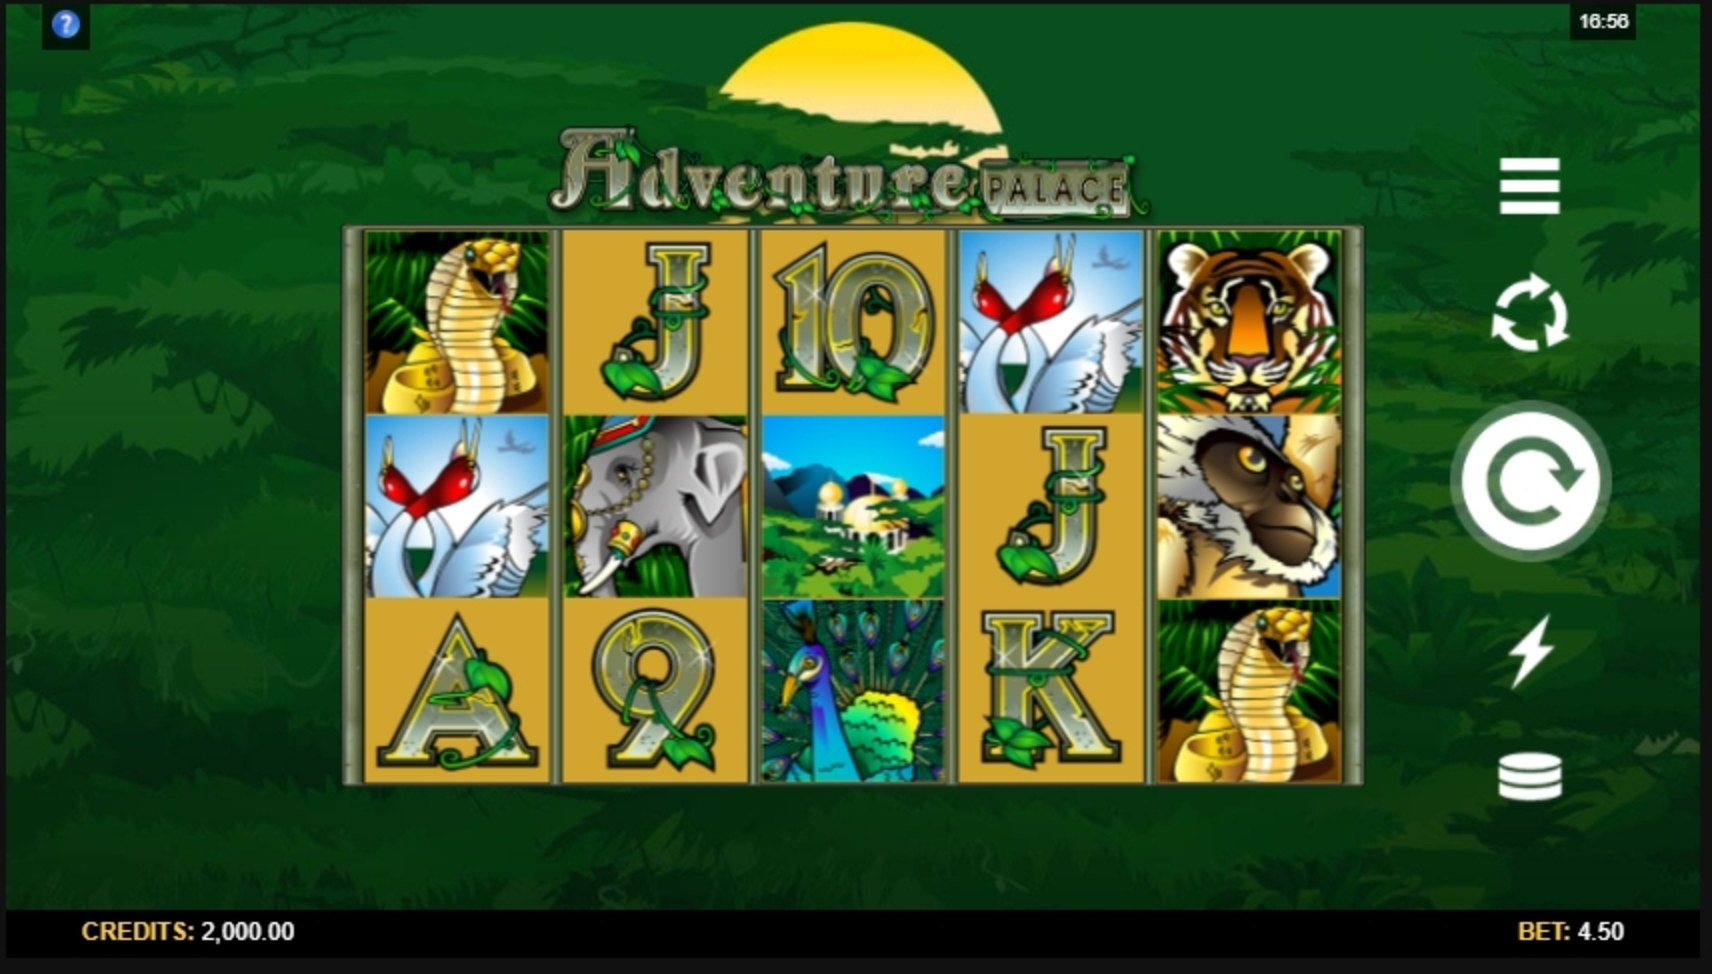 Reels in Adventure Palace Slot Game by Microgaming